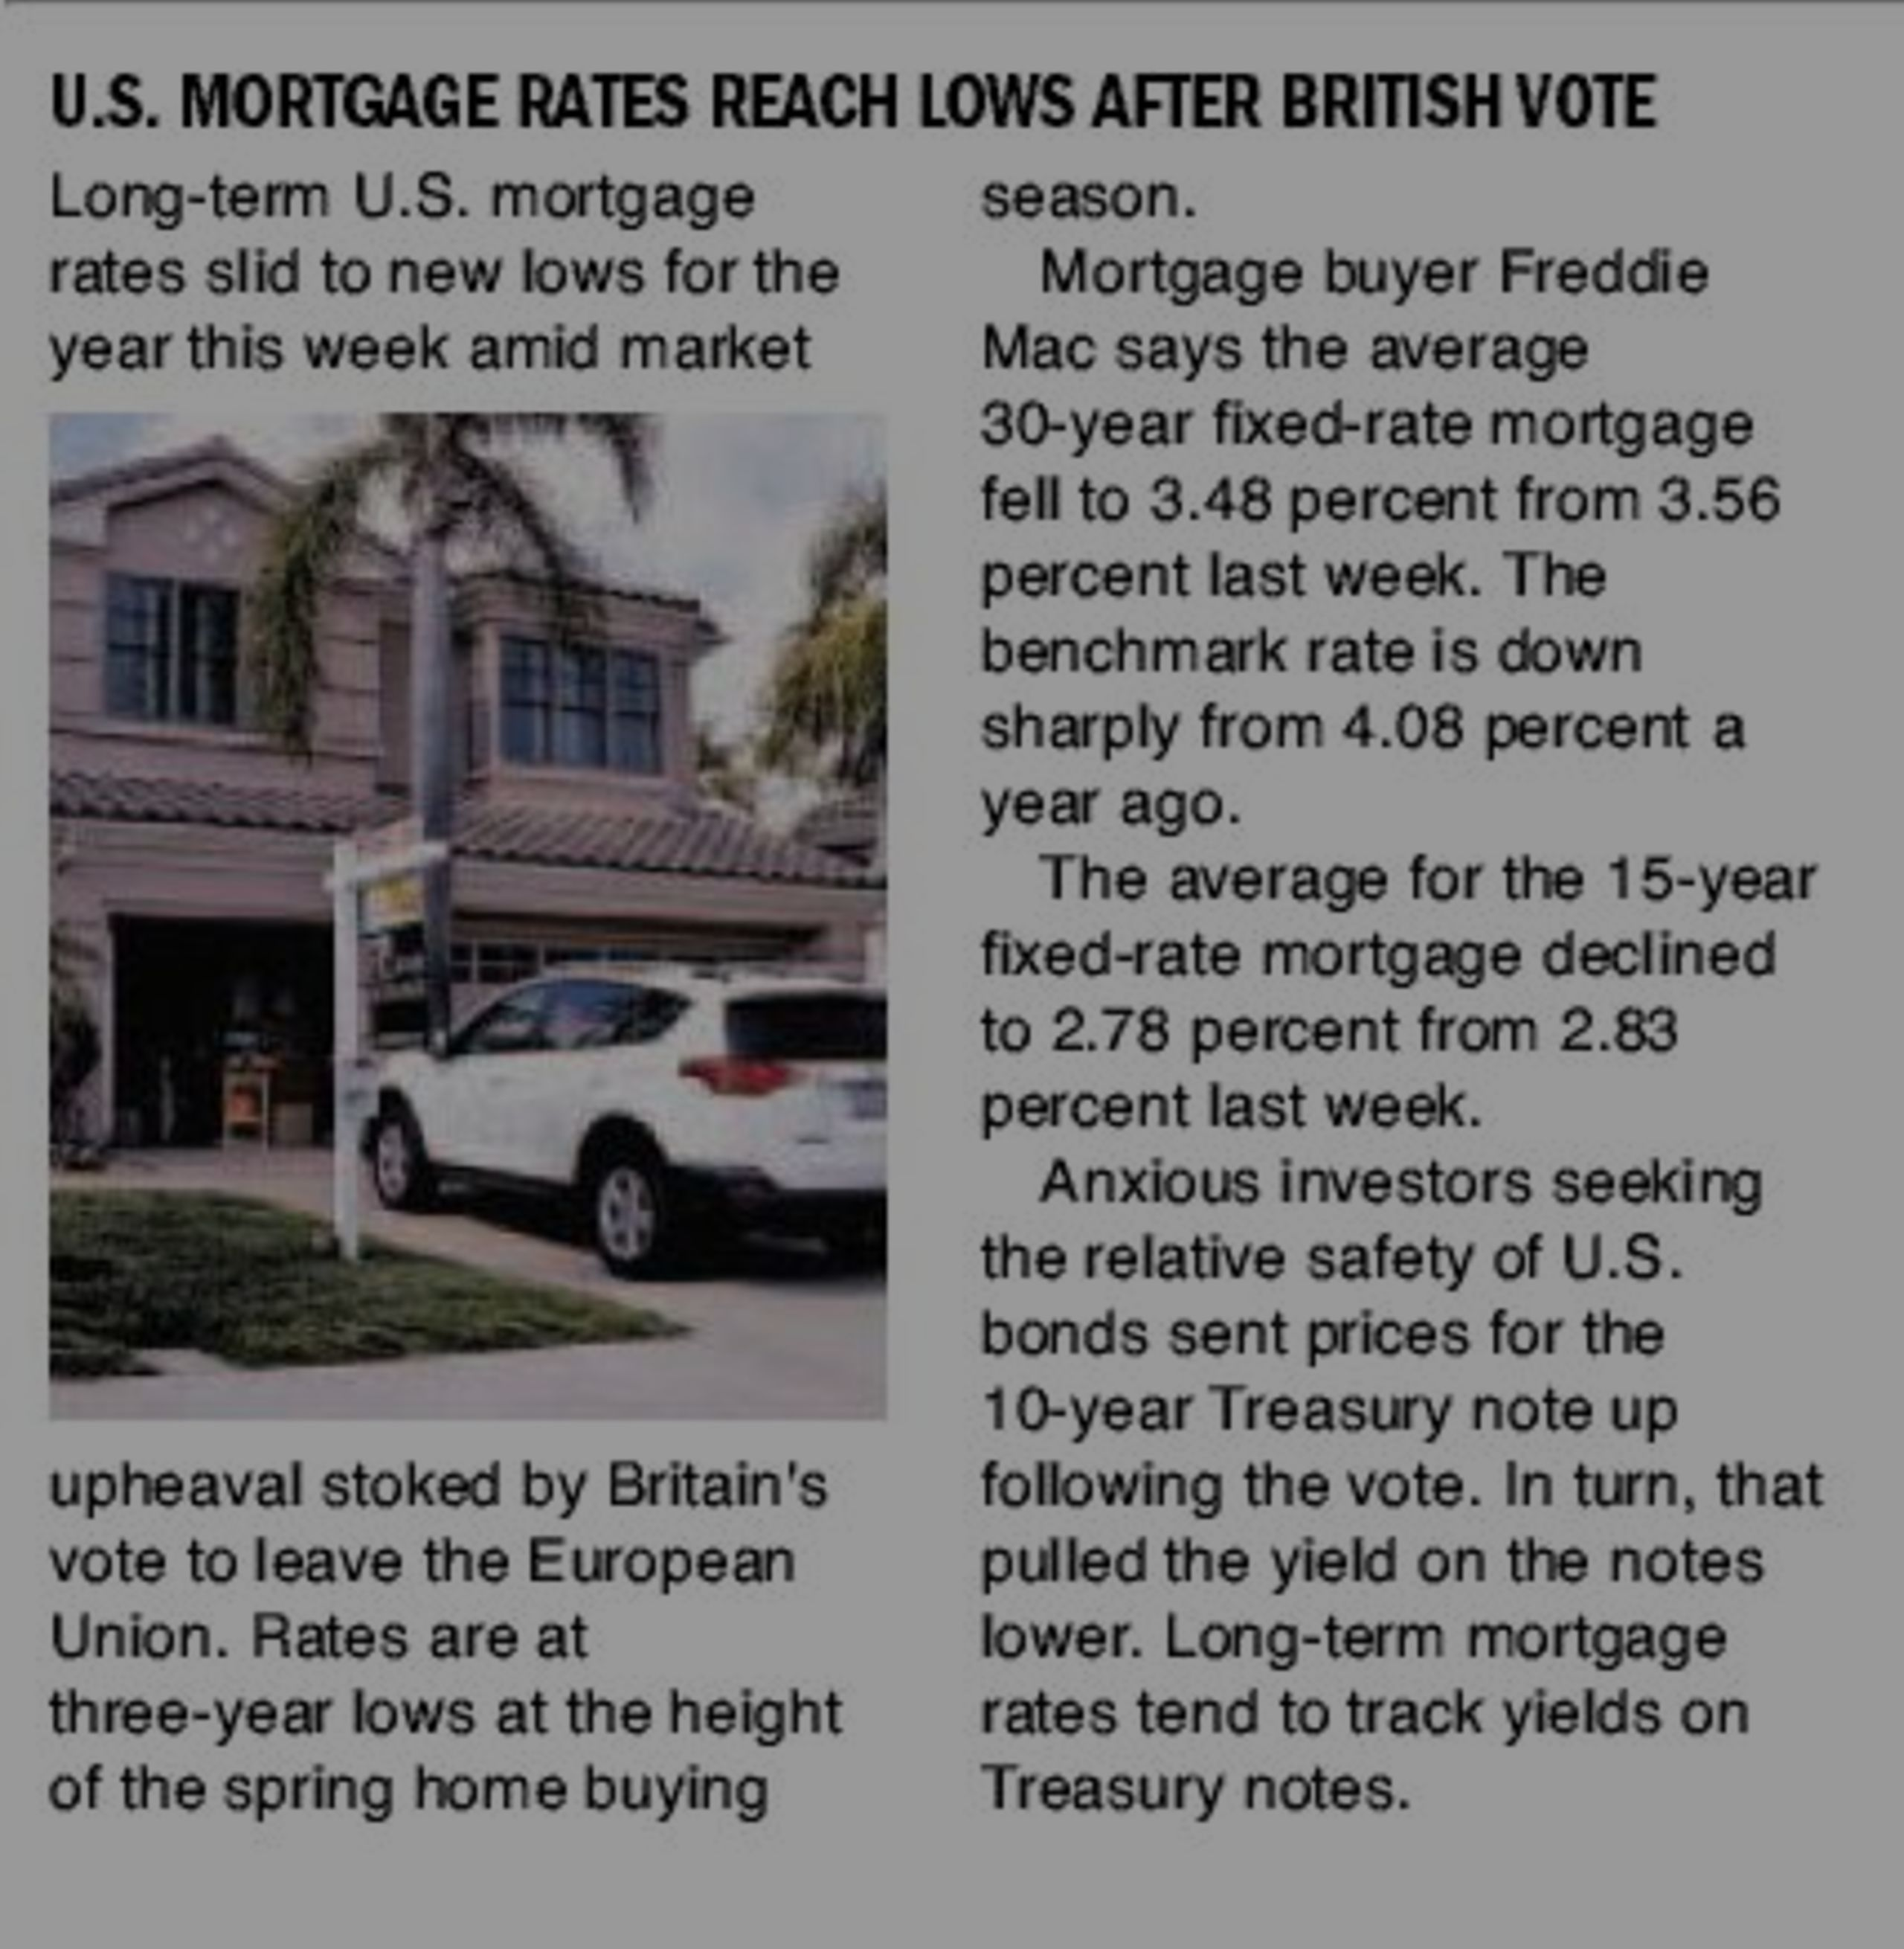 Long-term U.S. mortgage rates slid to new lows for the year this week amid market upheaval stoked by Britain's vote to leave the European Union.